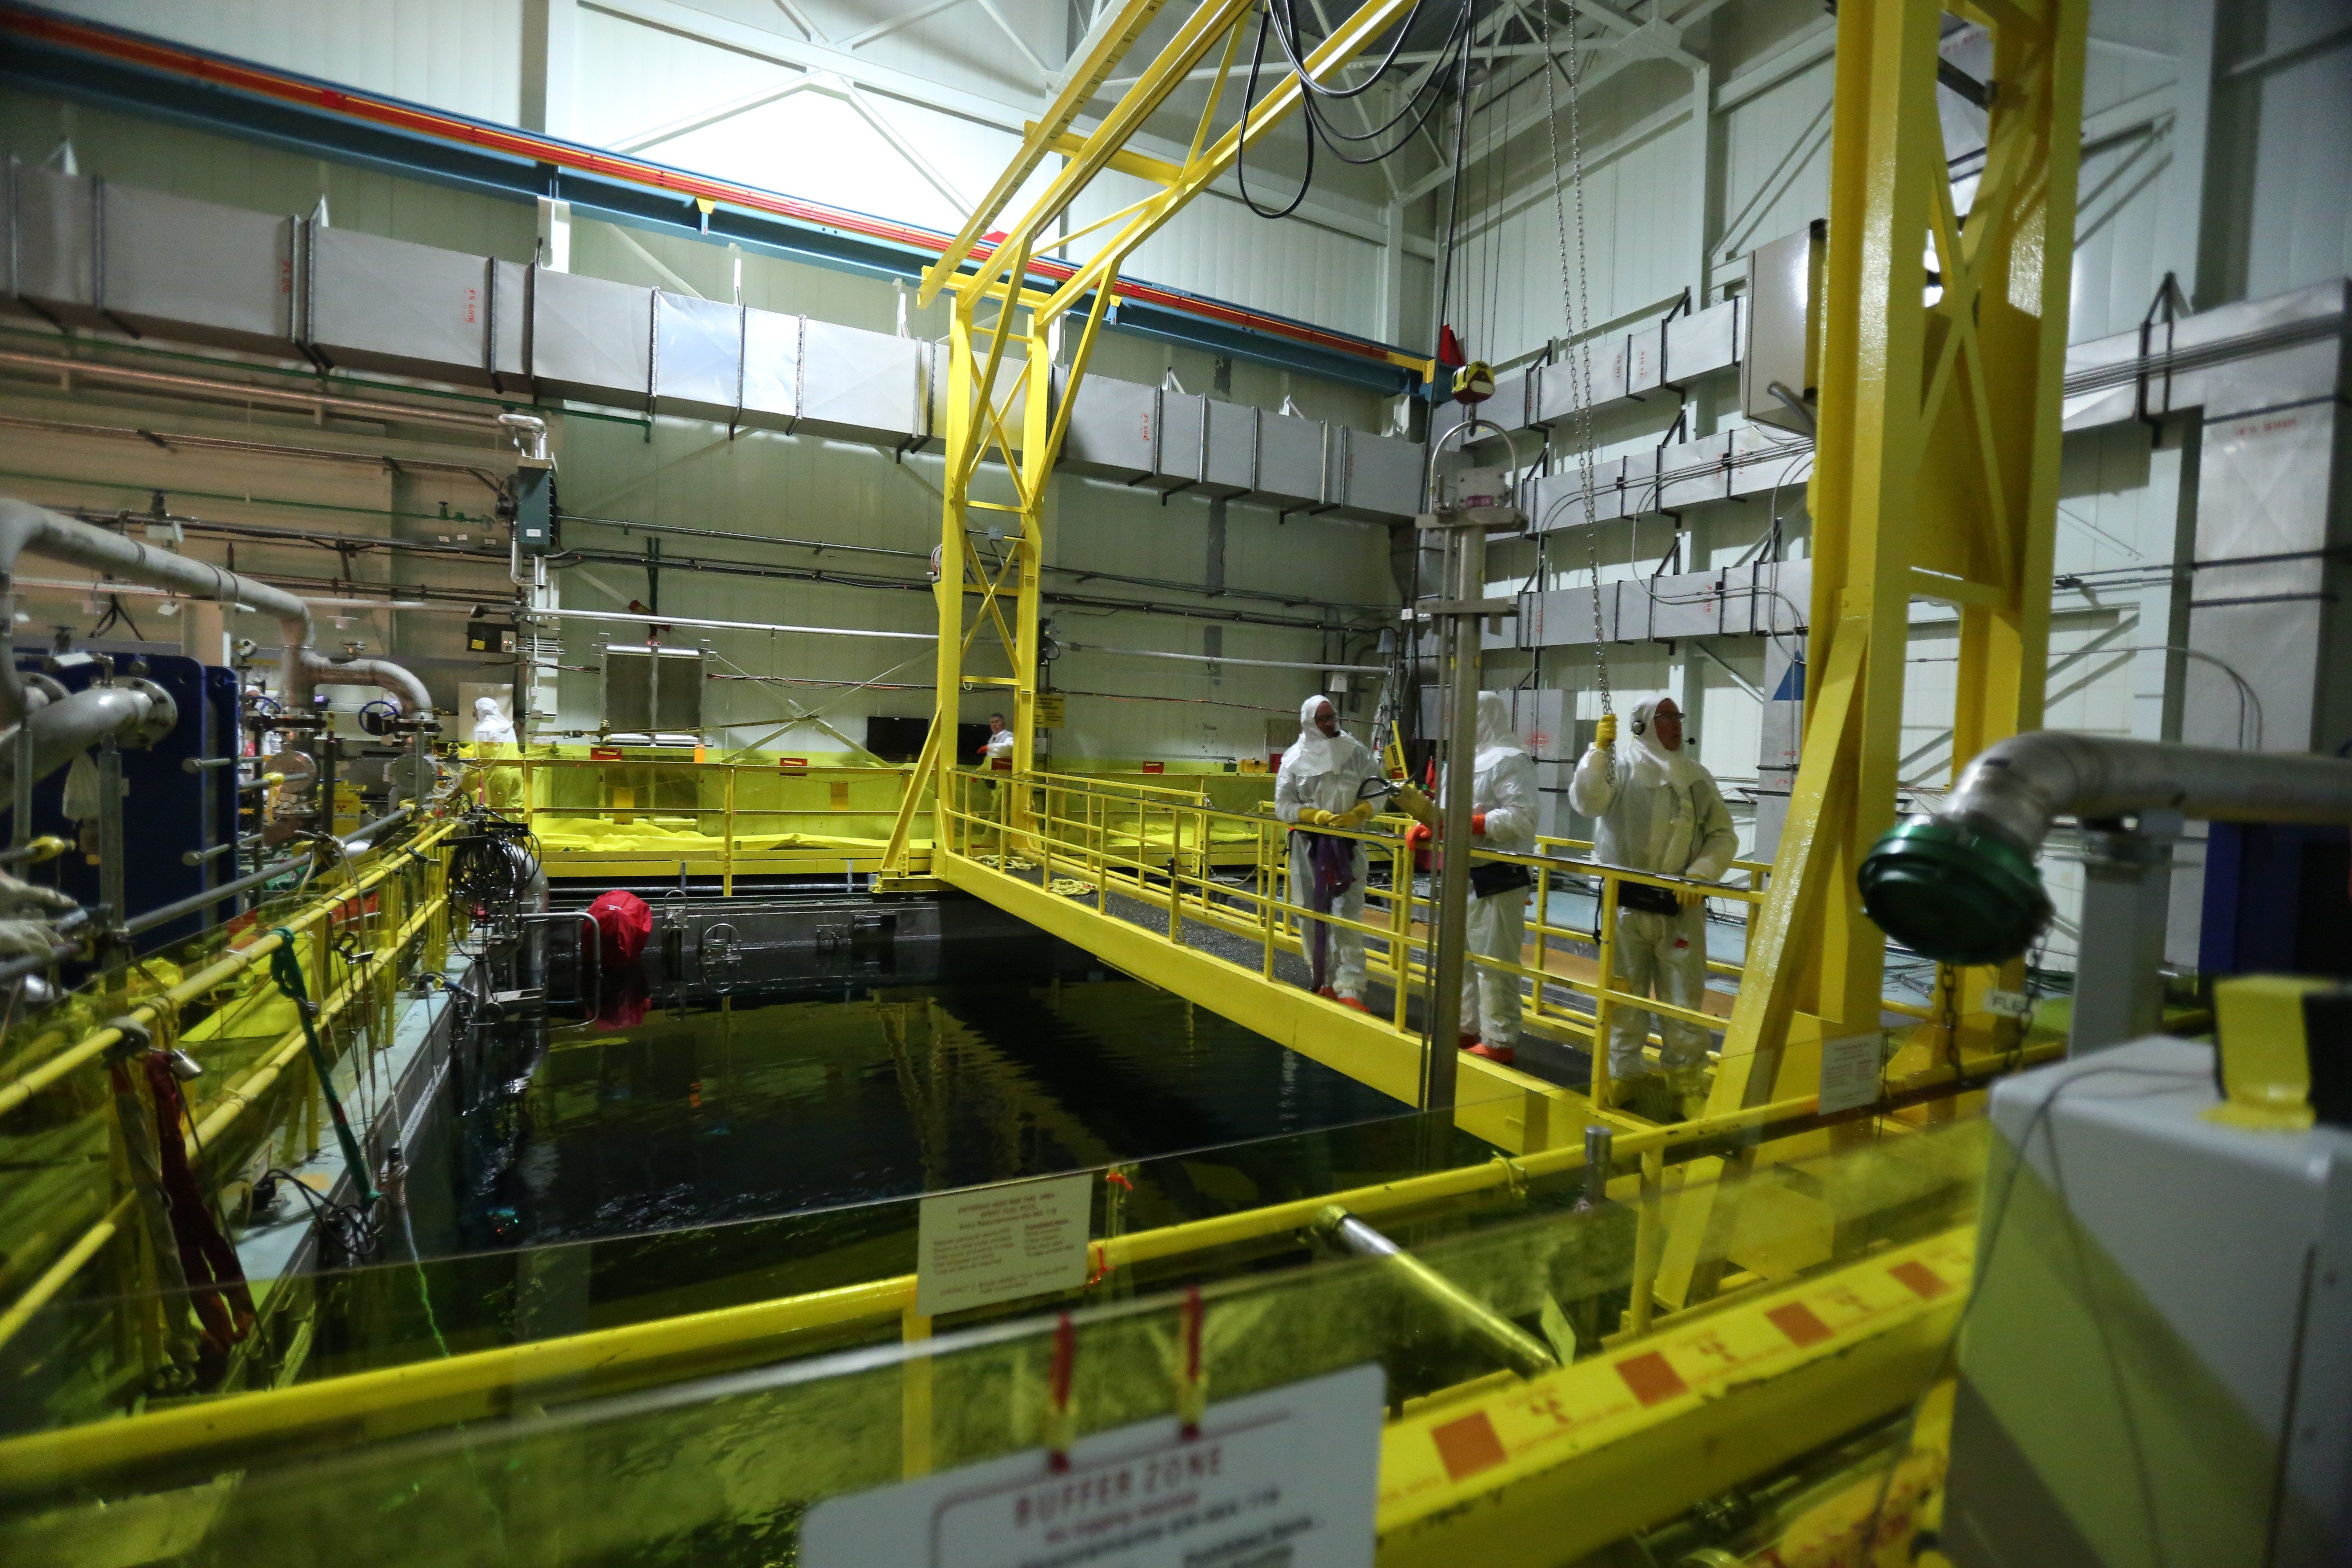 Workers remove a piece of equipment in the spent fuel pool of Unit 3, at the Indian Point Energy Center in Buchanan, Aug. 11, 2015.